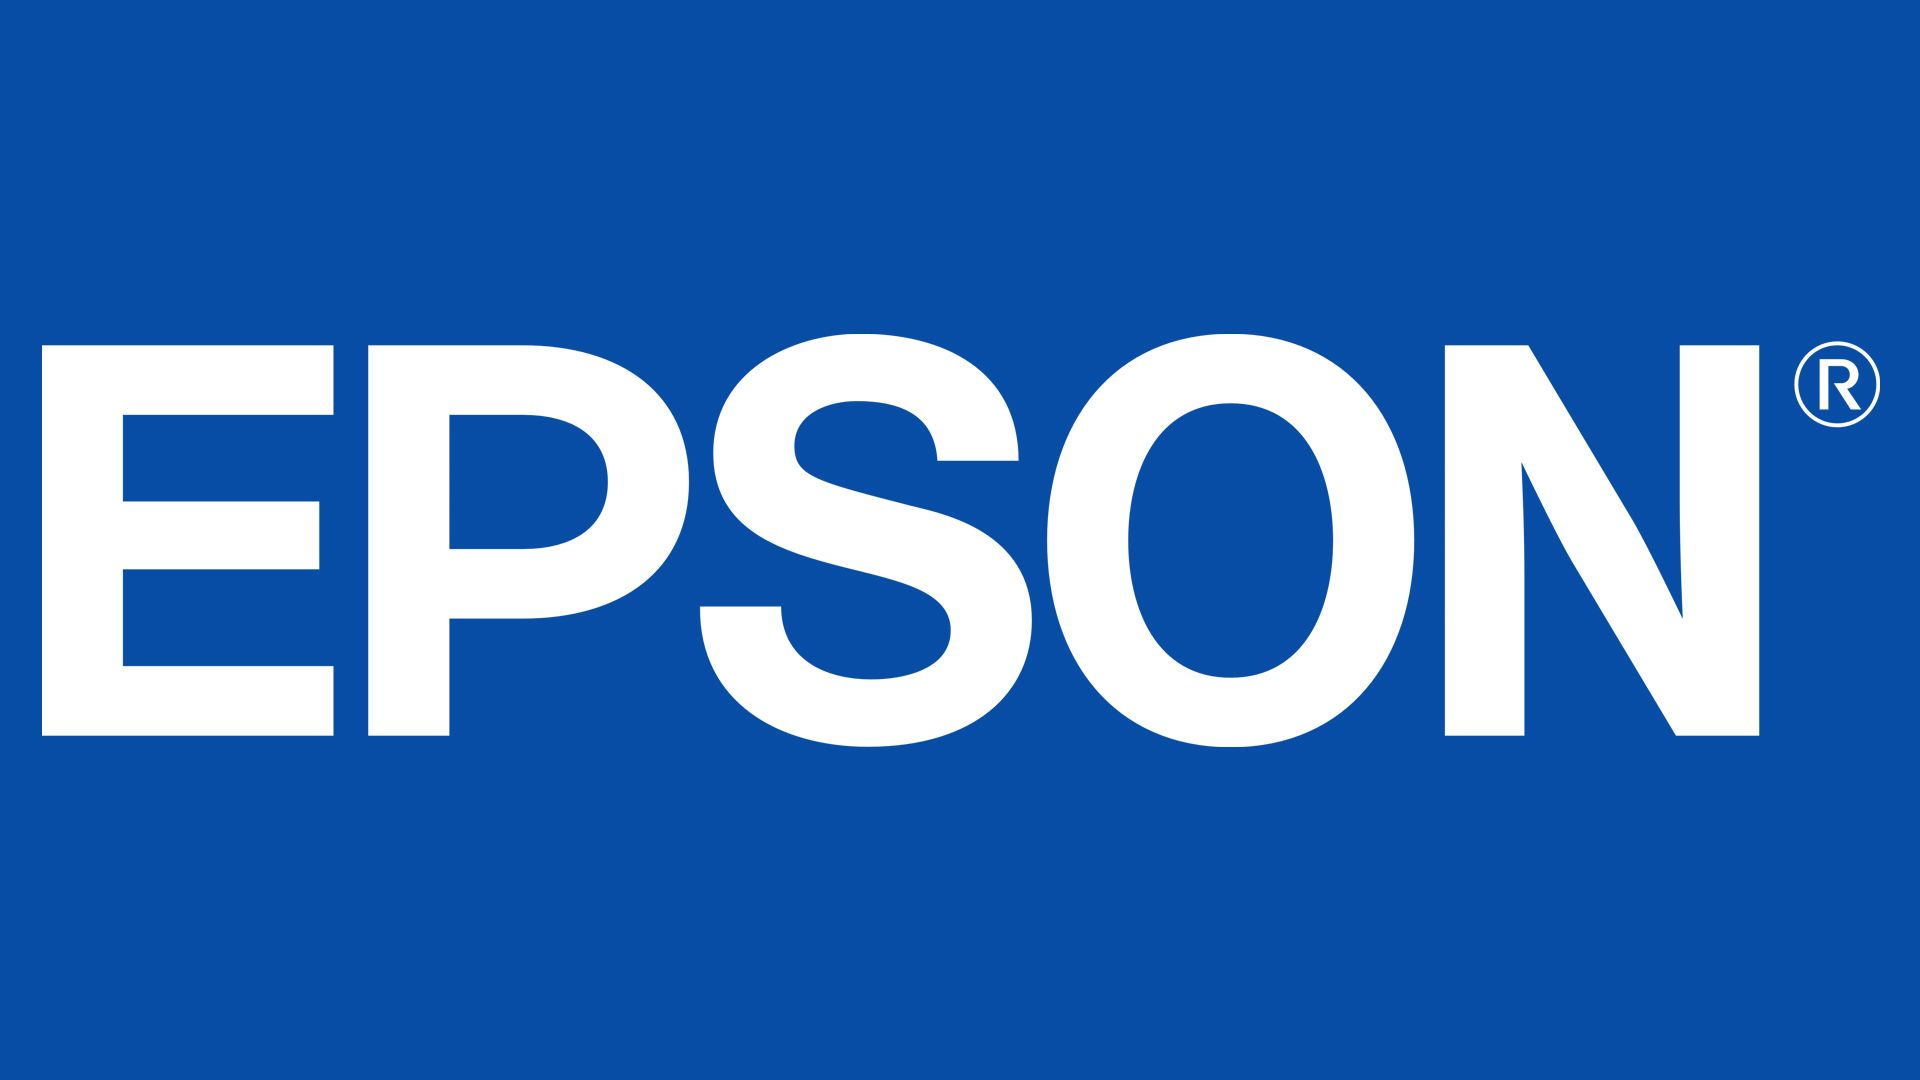 Epson Logo - Epson Logo, Epson Symbol, Meaning, History and Evolution